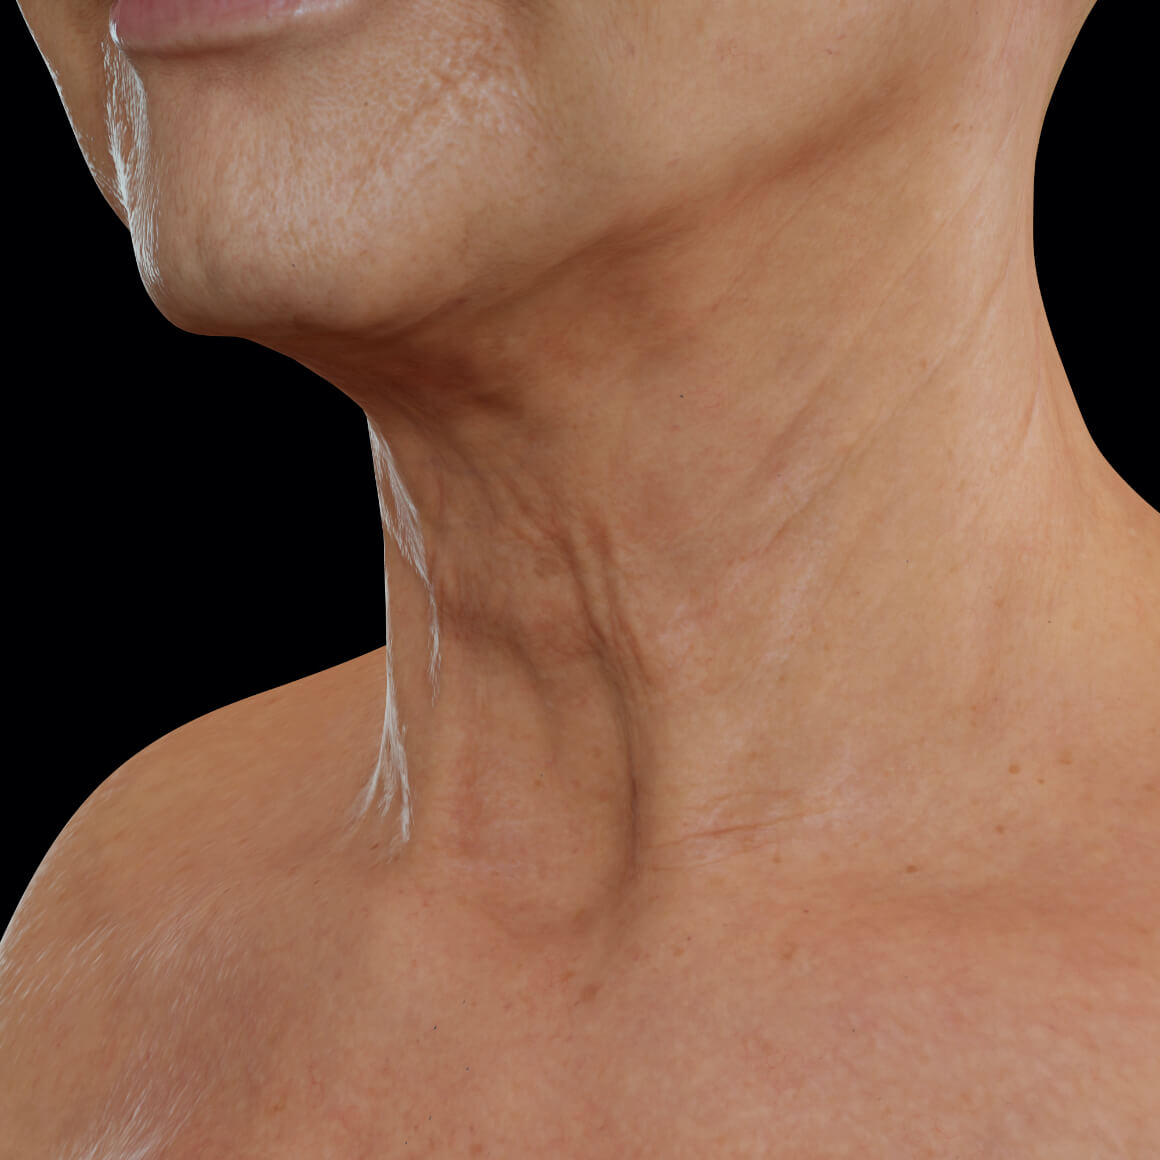 Female patient from Clinique Chloé positioned at an angle after Venus Viva treatments for neck skin tightening